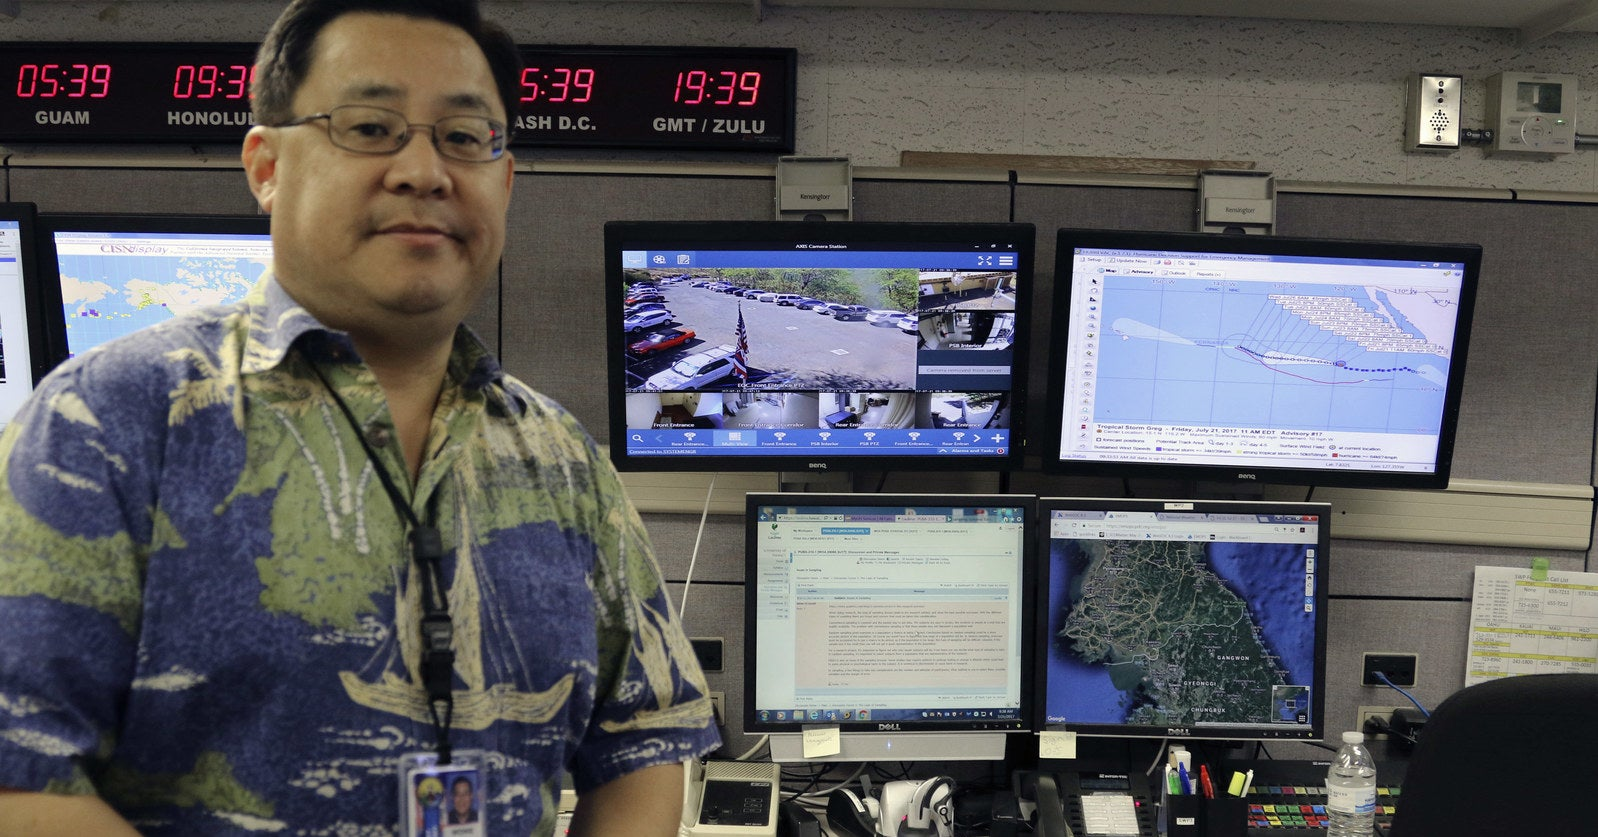 Employees At The Hawaii Agency That Sent The False Missile Alert Slept On The Job